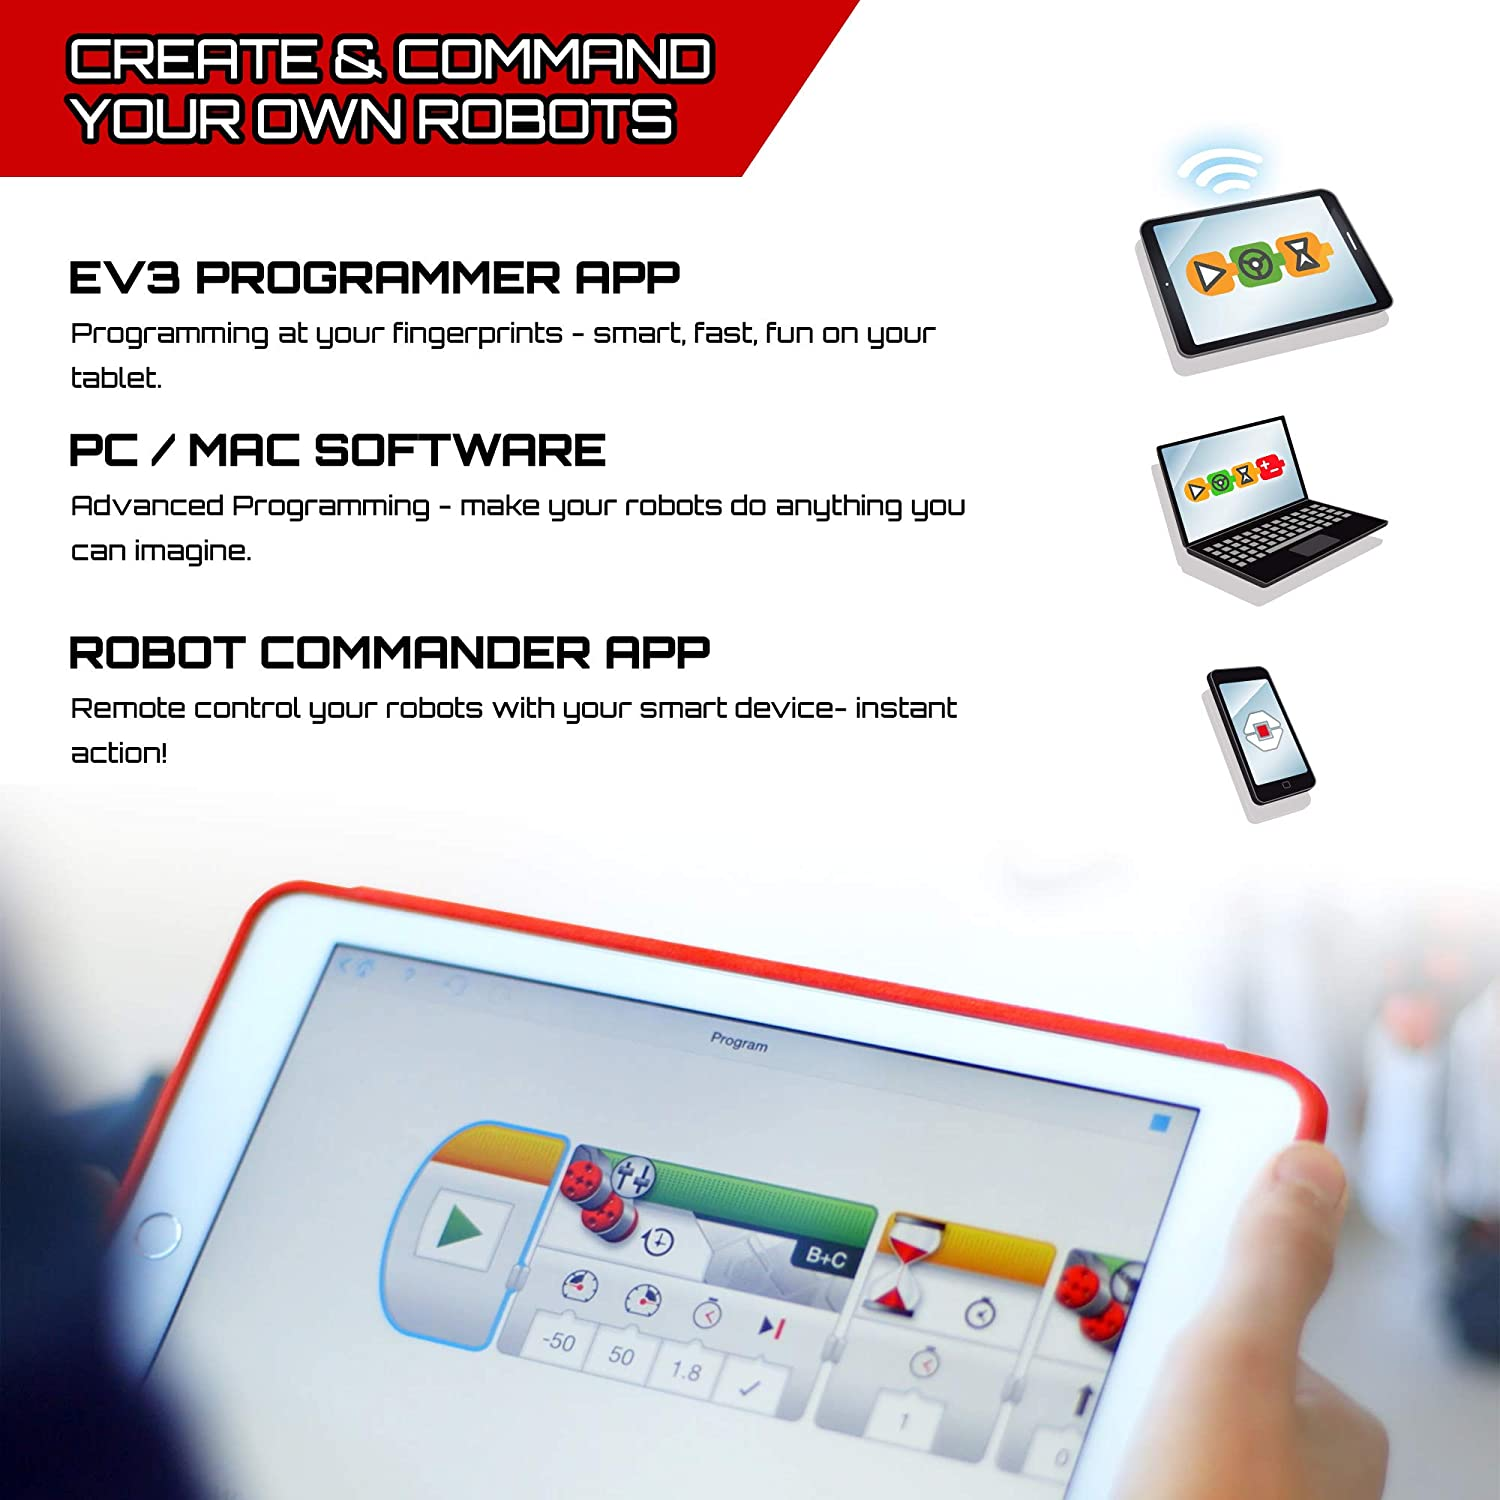 LEGO 31313 Mindstorms EV3 Robotics Kit, 5 in 1 App Controlled Model with  Programmable Interactive Toy Robot, RC, Servo Motor and Bluetooth Hub,  Coding